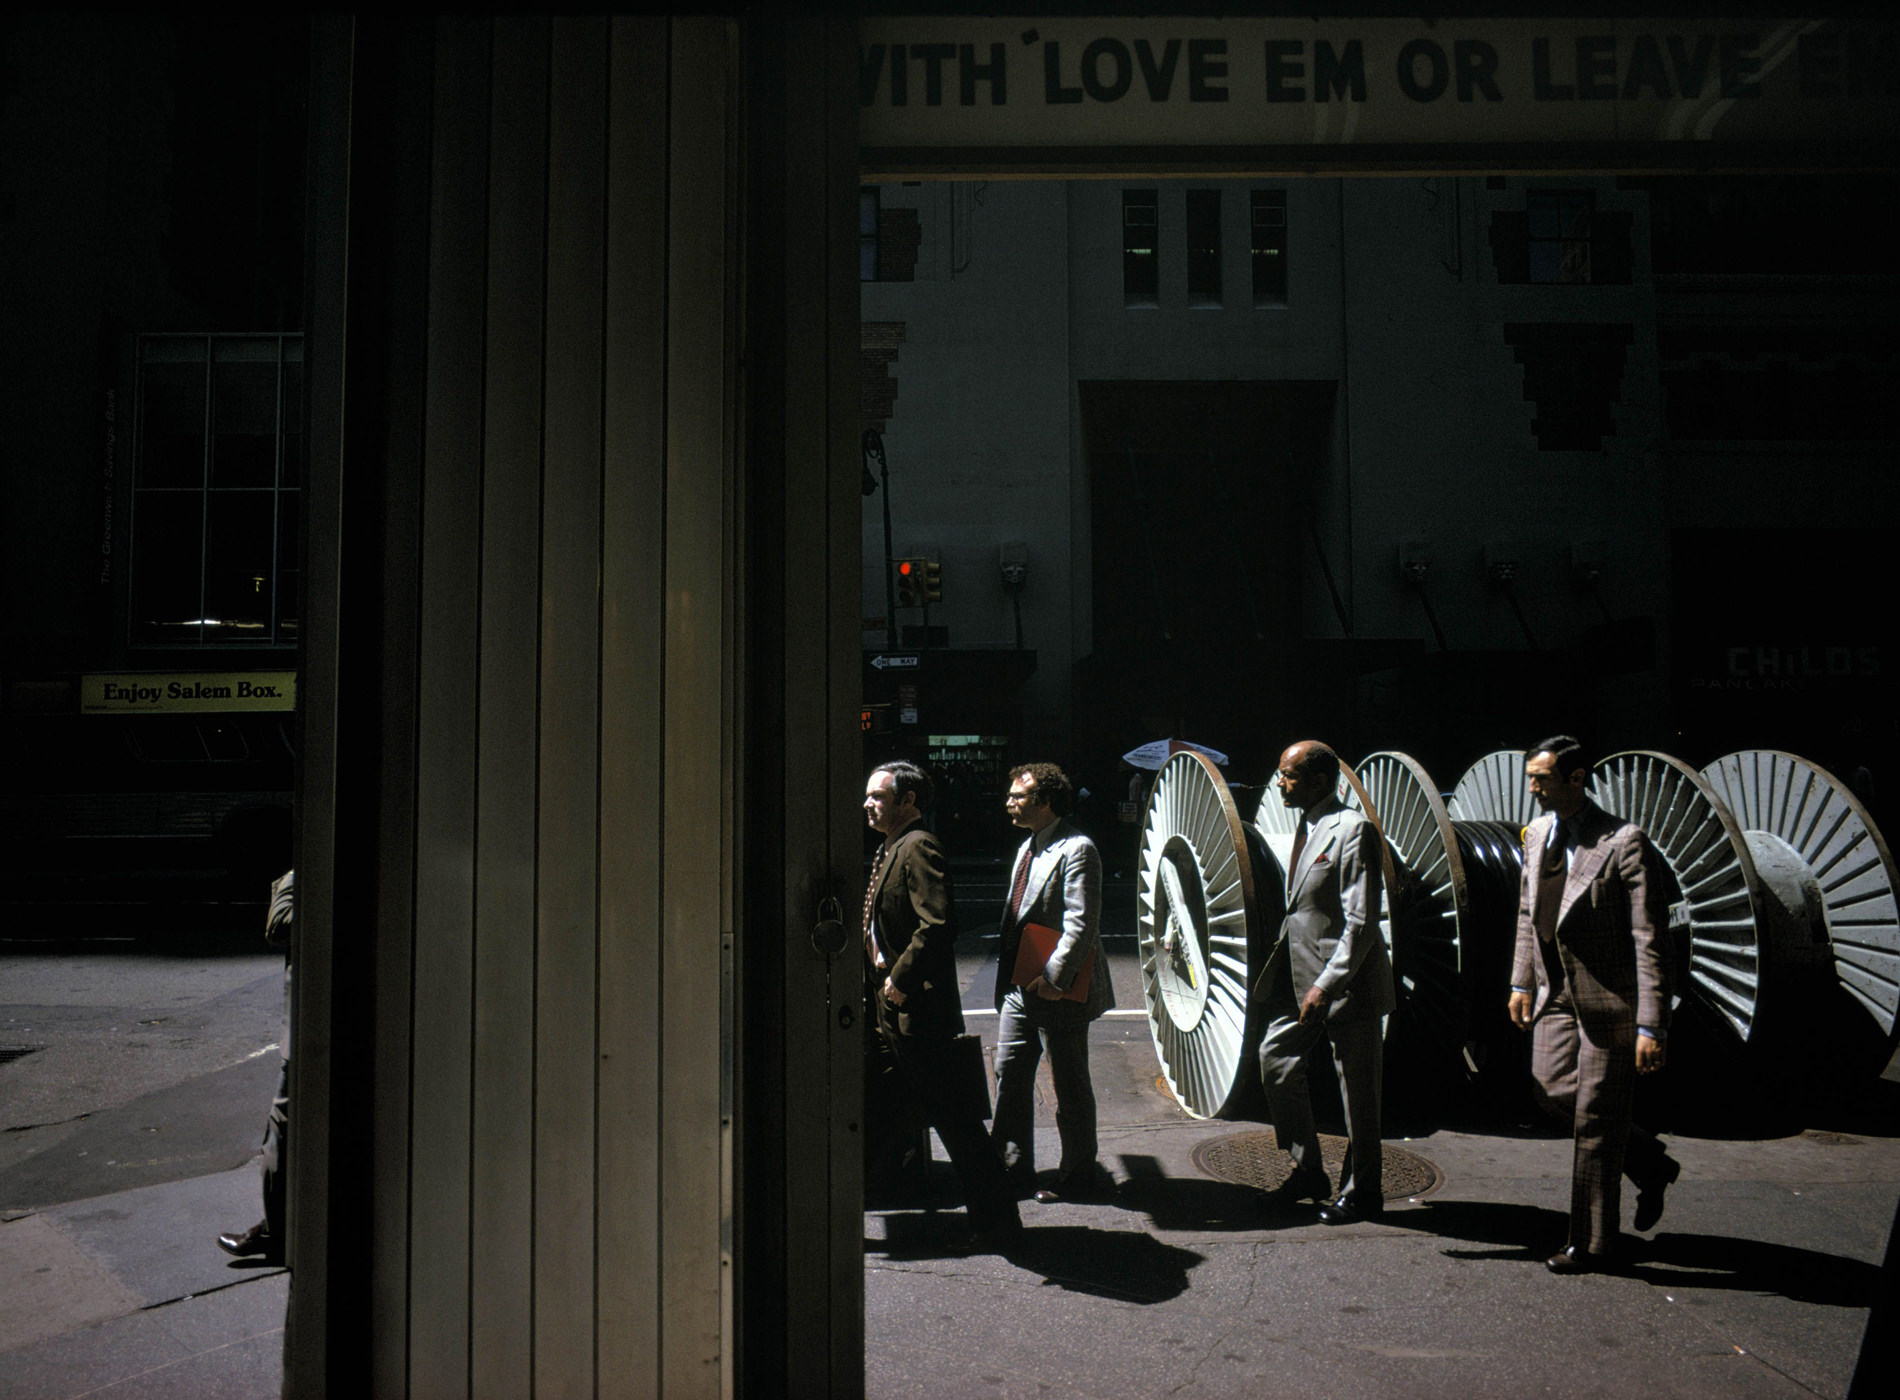 Joel Meyerowitz, New York City, 1976